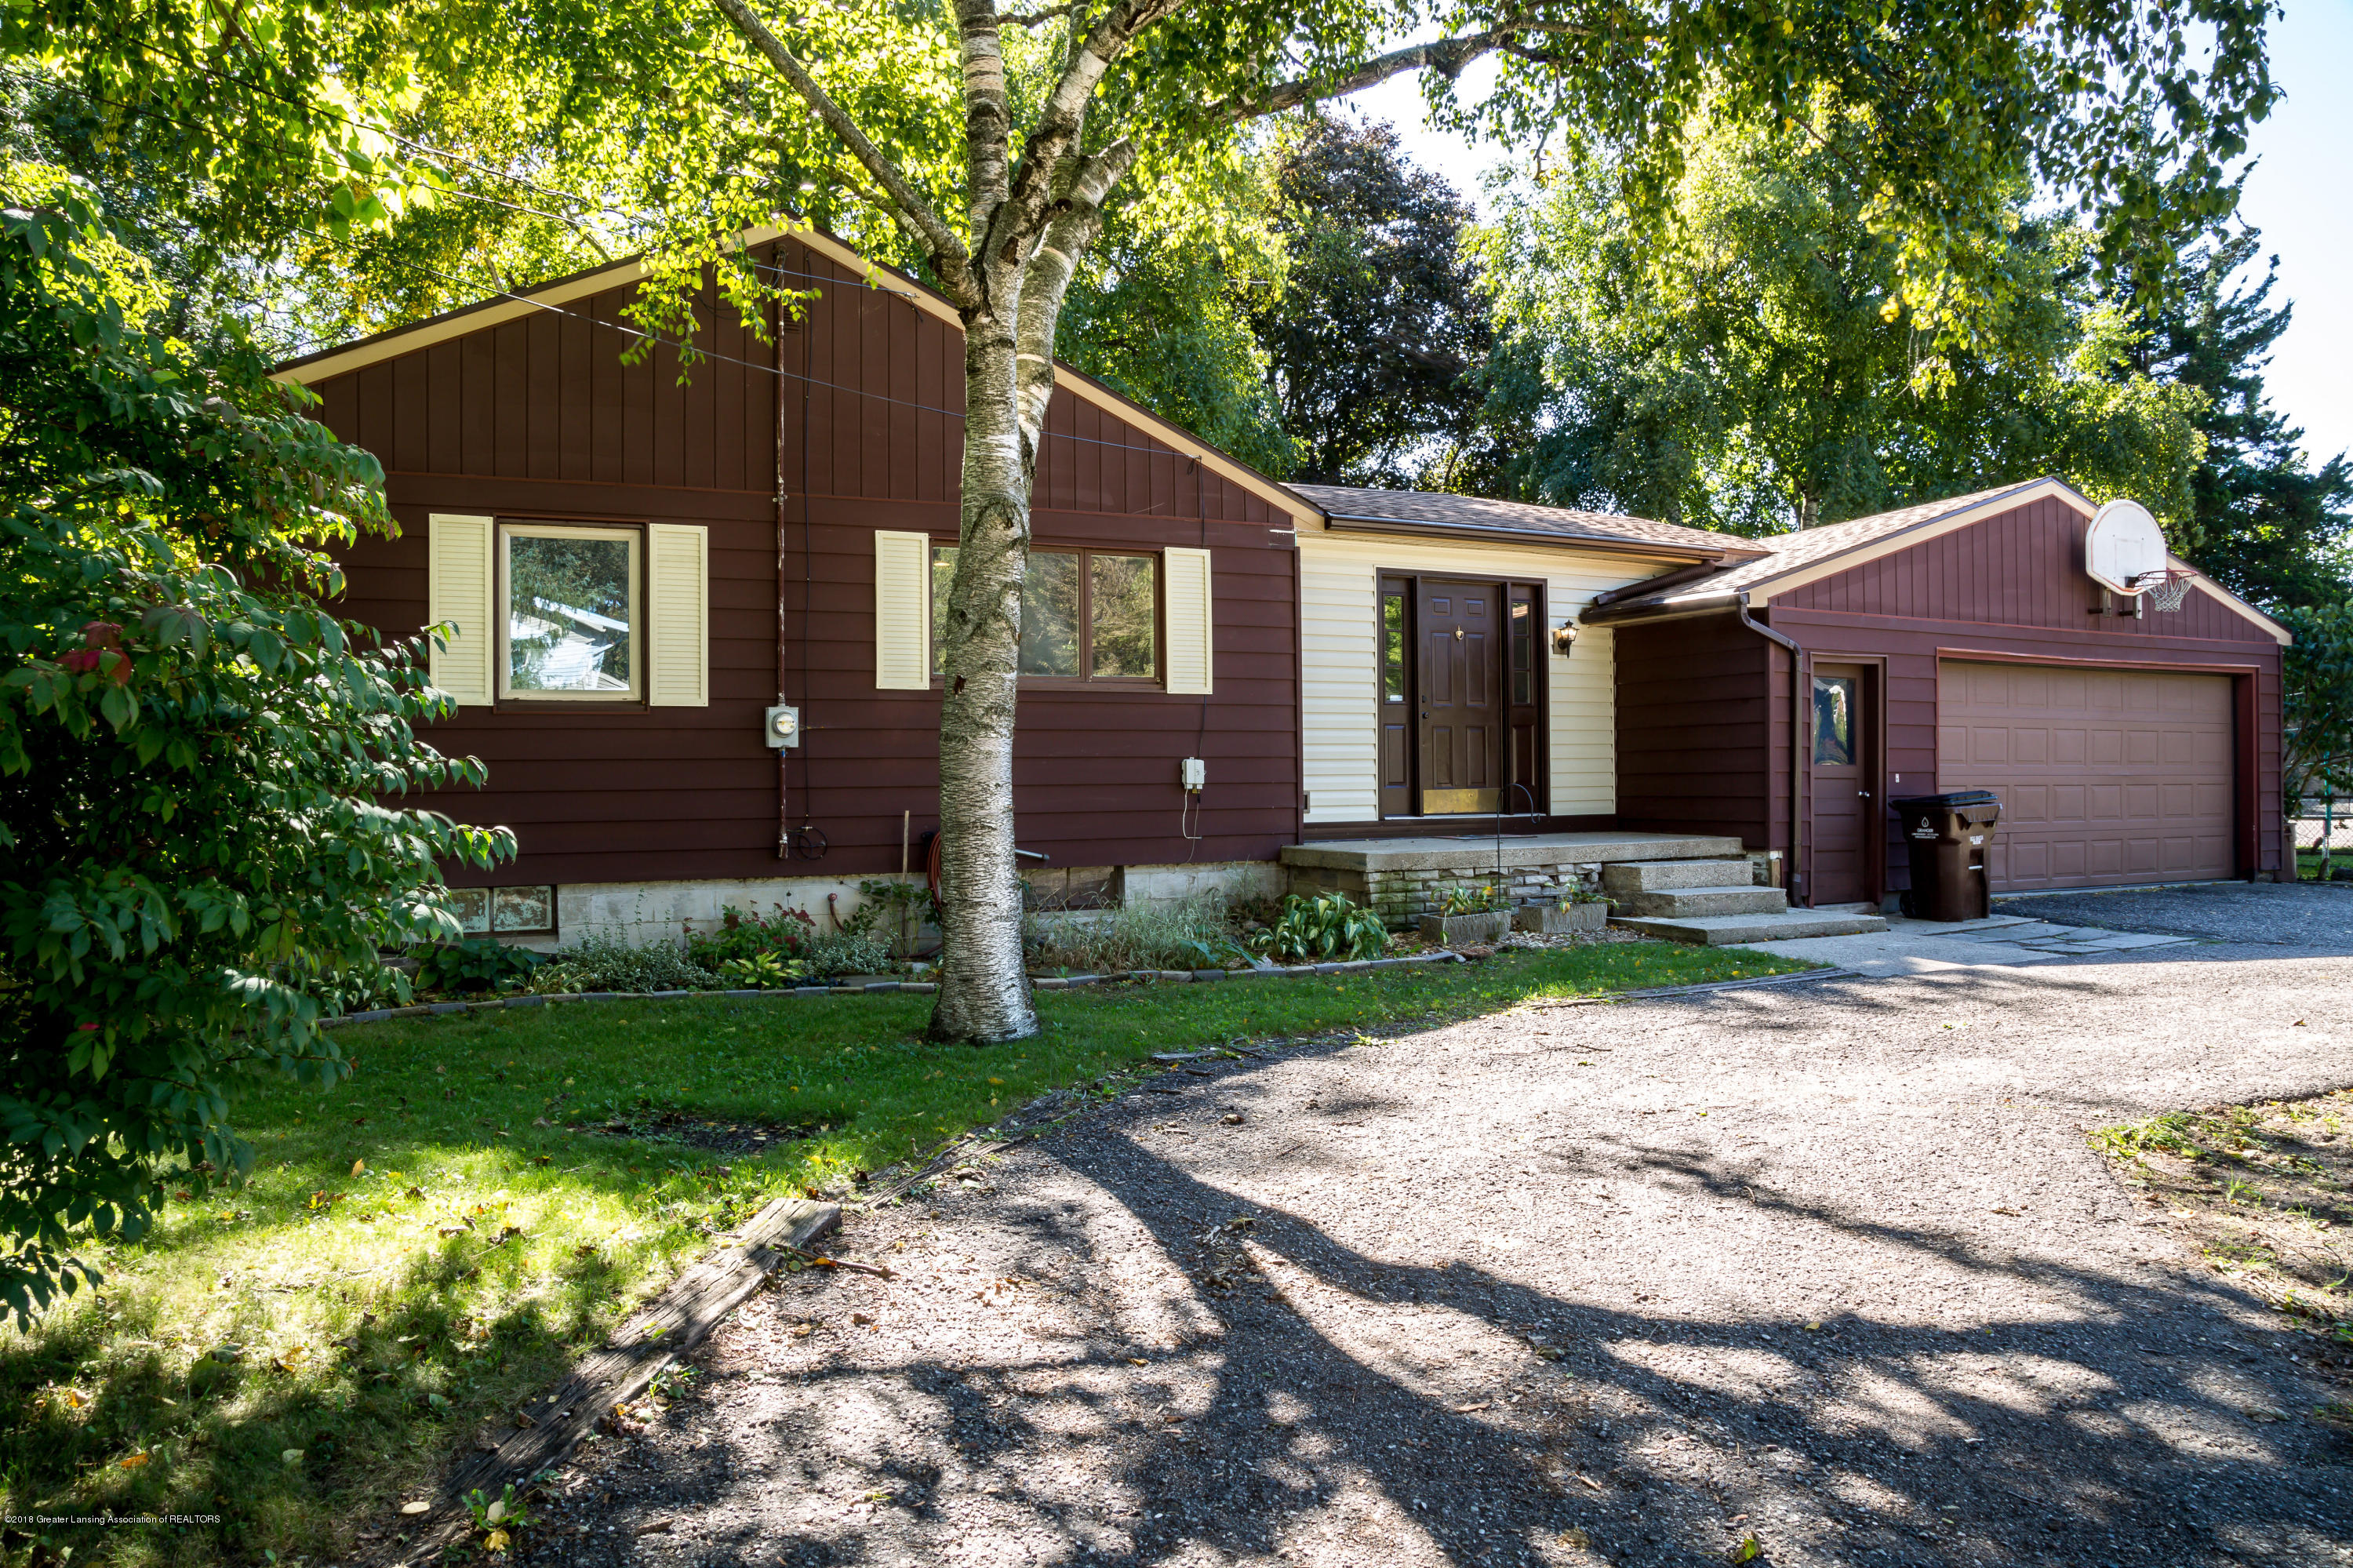 1857 Maple St - Home - 1